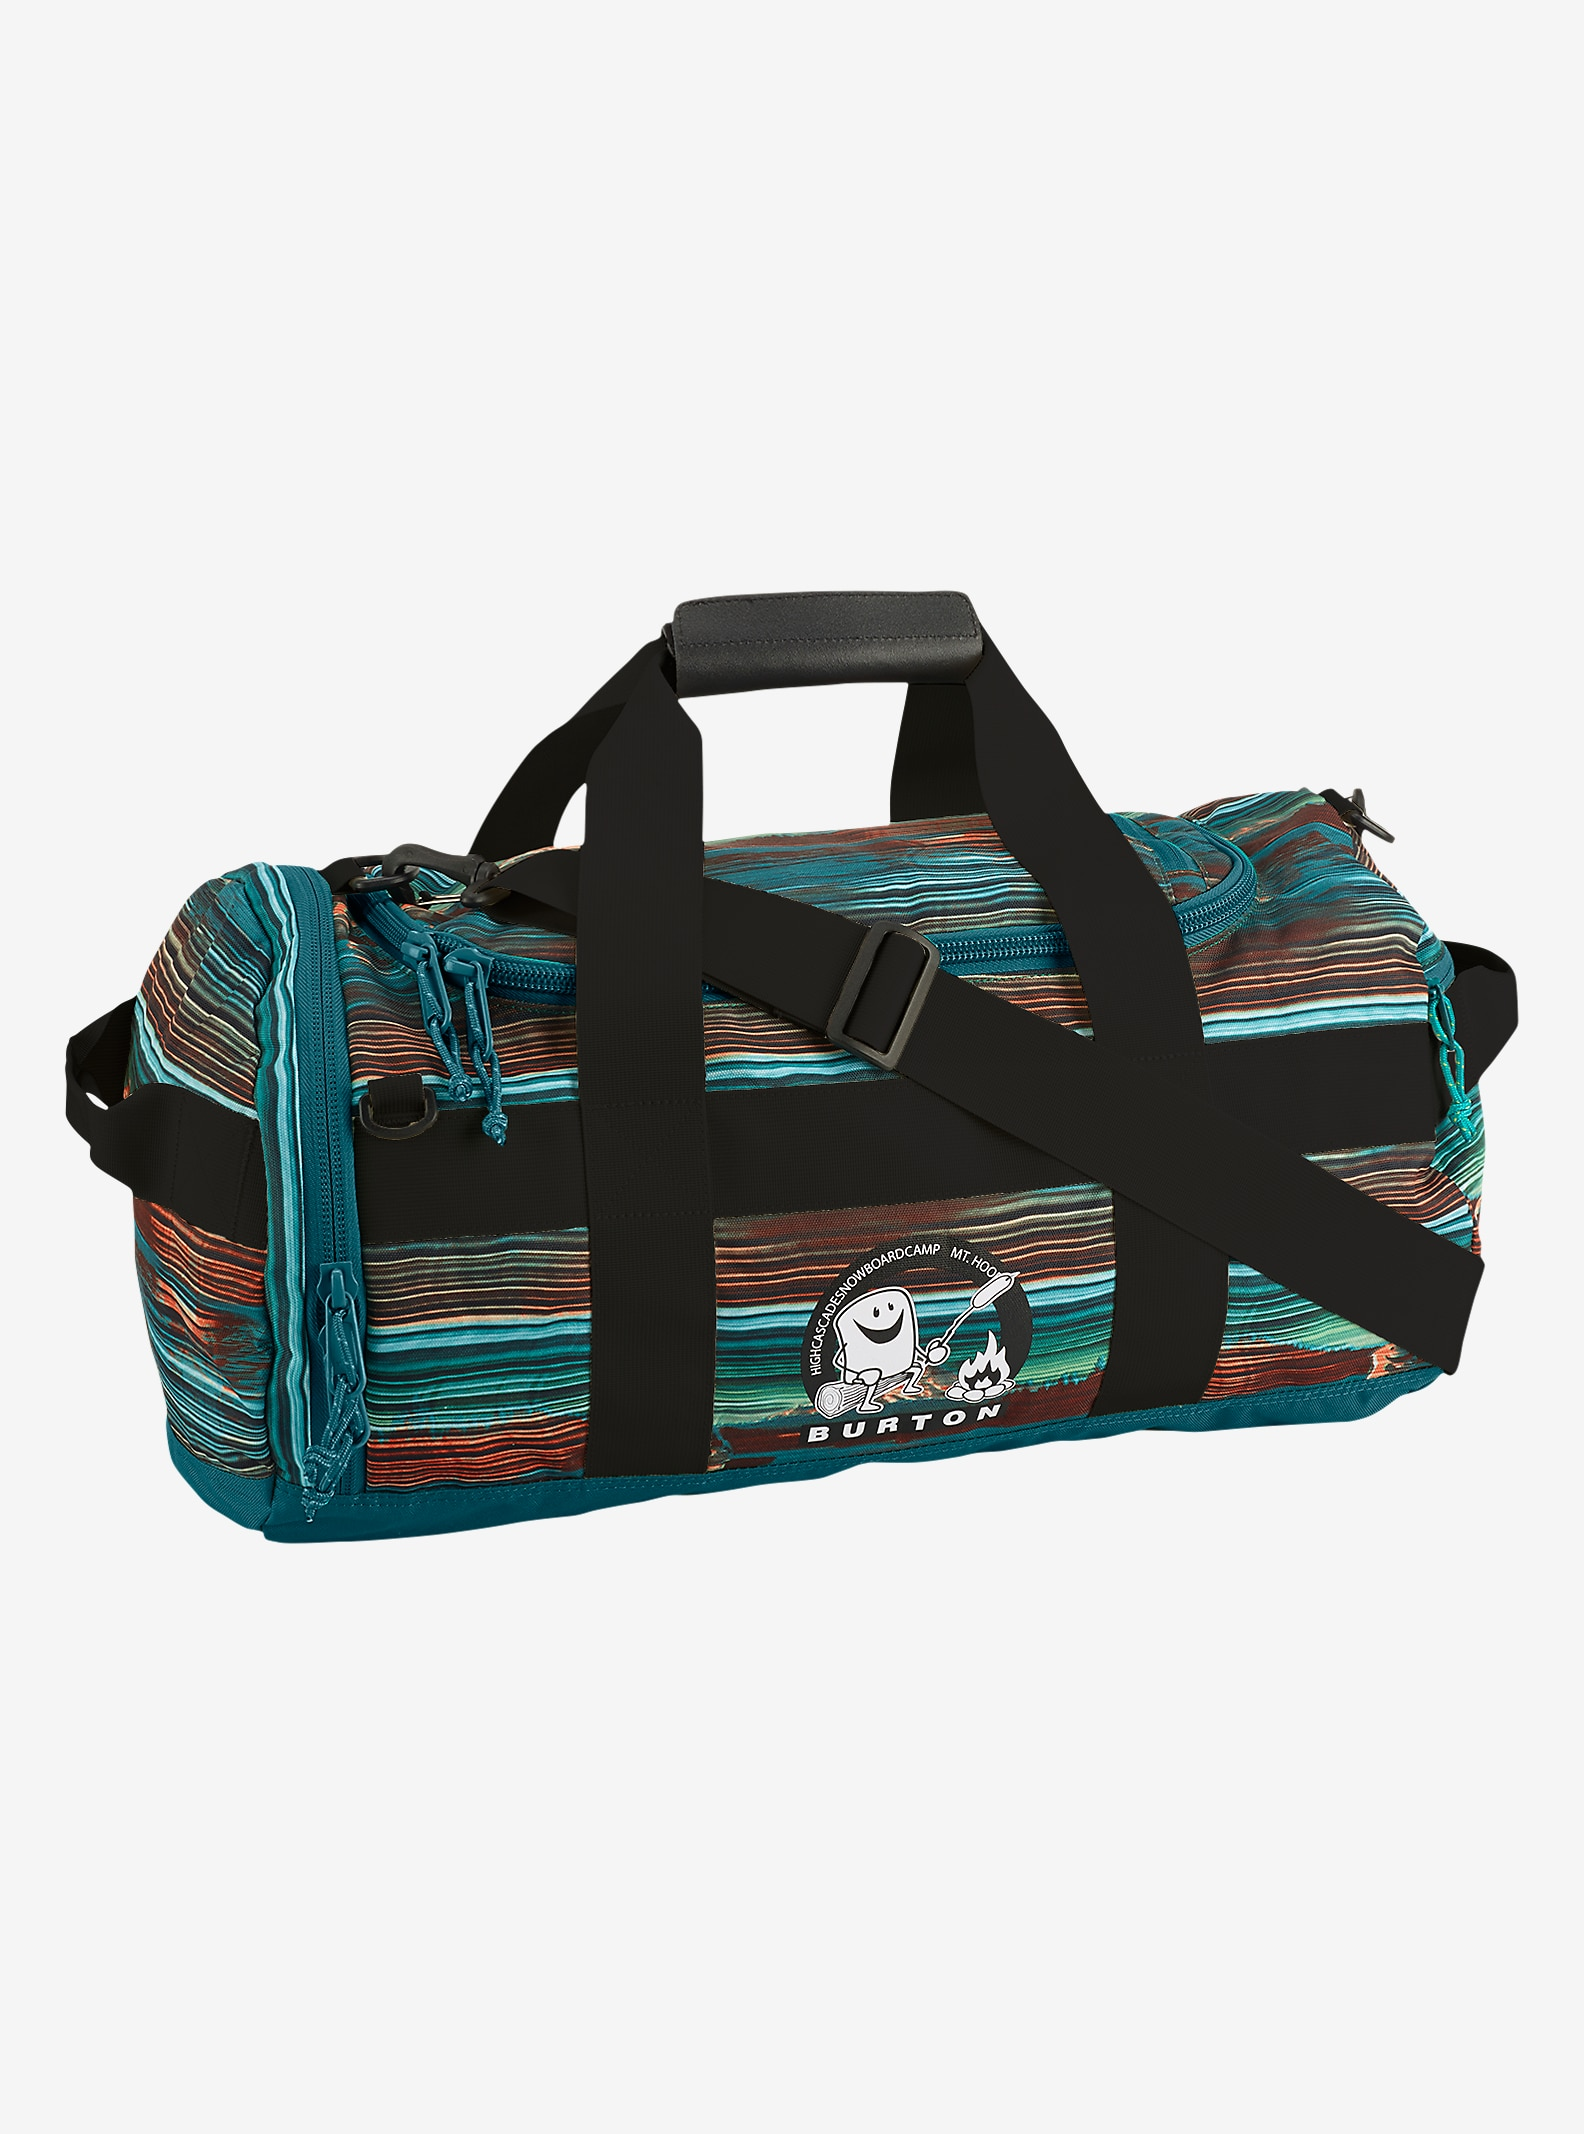 HCSC x Burton Backhill Duffel Small 40L shown in HCSC Scout Bright